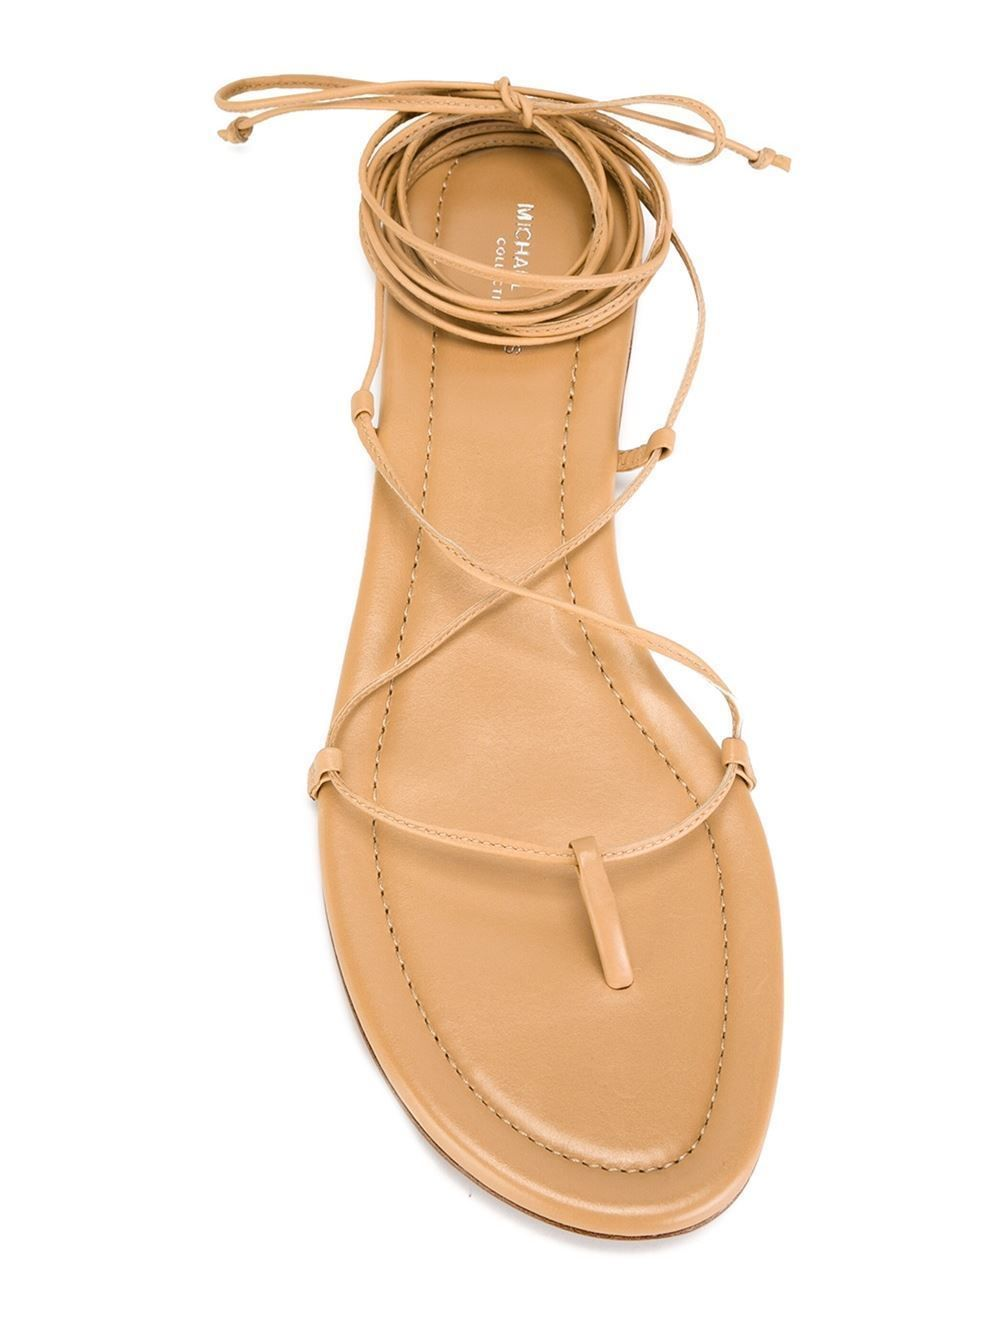 8793b3855131 NEW MICHAEL KORS COLLECTION BRADSHAW LACE UP GLADIATOR FLAT SANDALS SANDAL  sz 42 889407968614